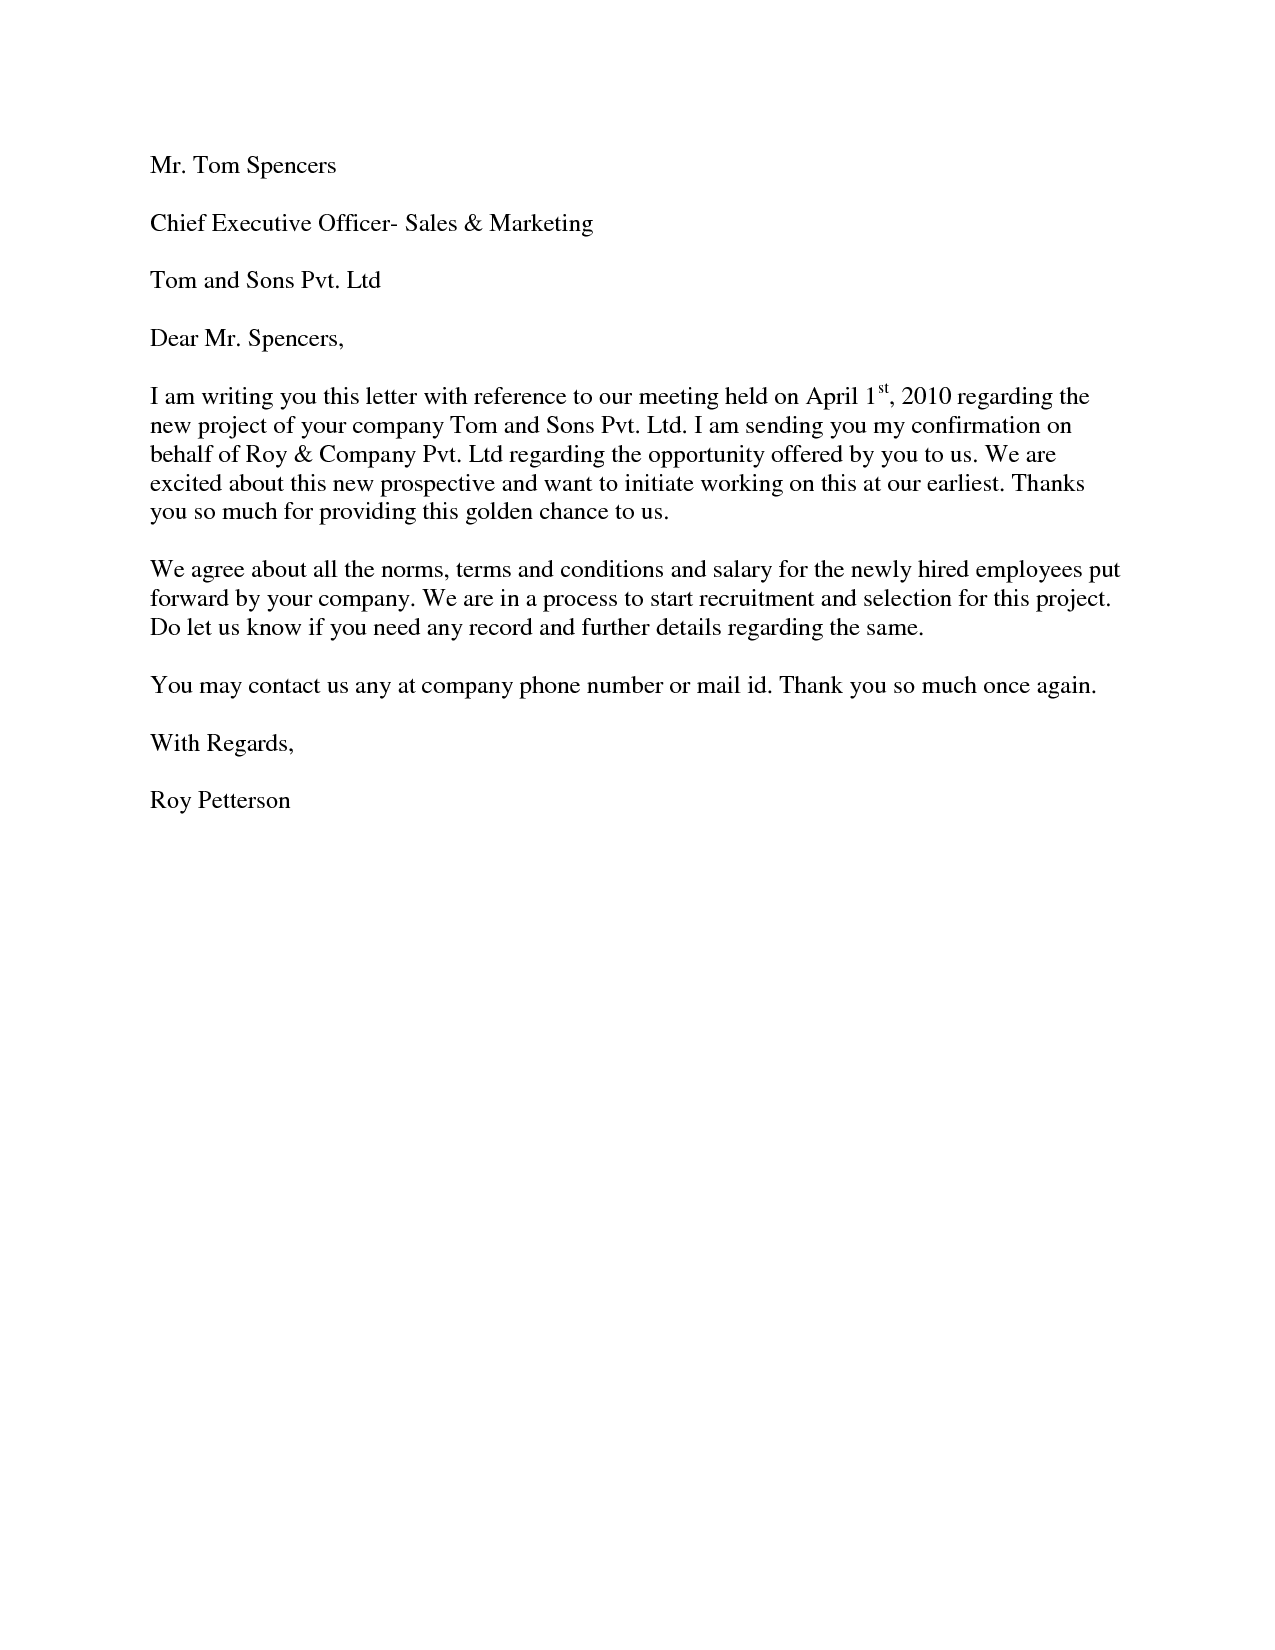 sales offer letter commercial rental agreement template free